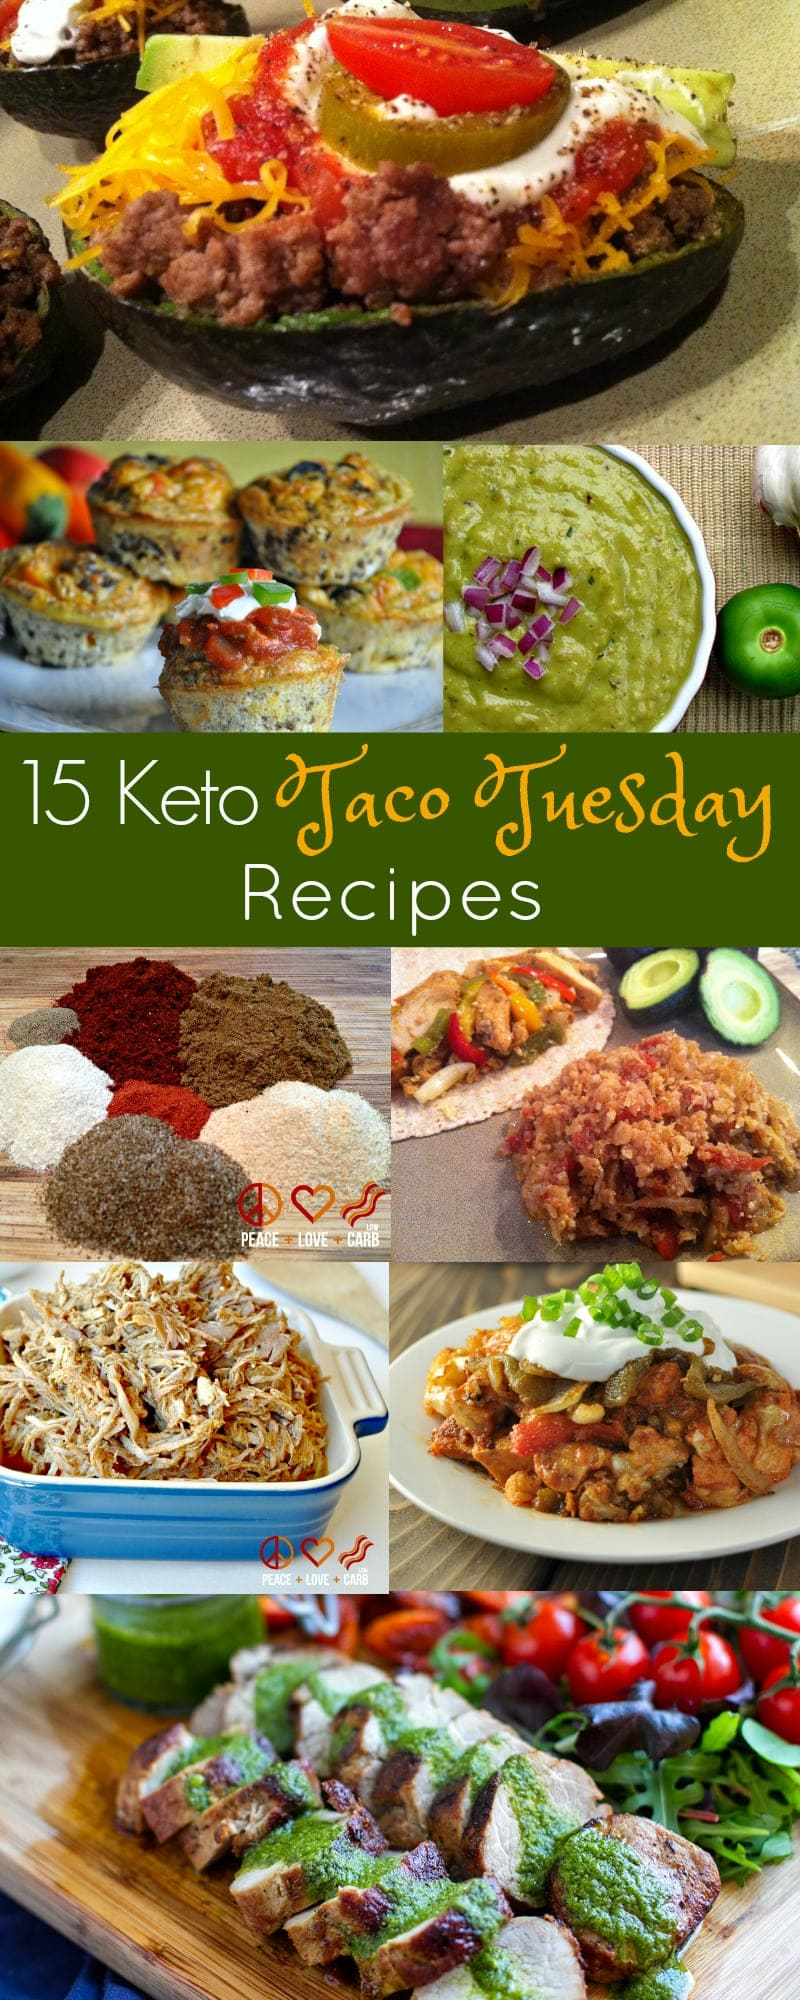 15 Keto Taco Tuesday Recipes | Peace Love and Low Carb